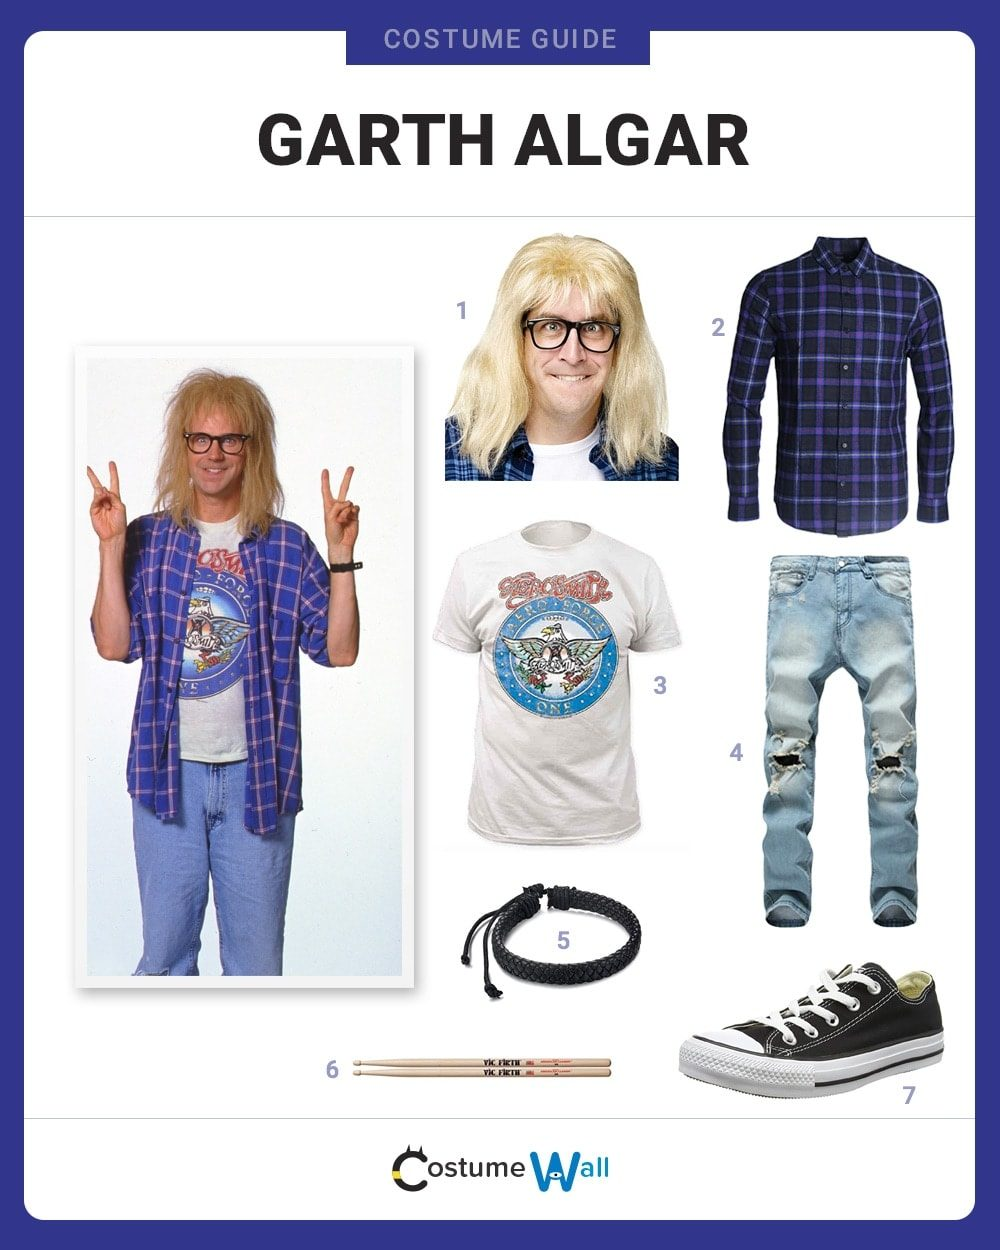 Garth Algar Costume Guide